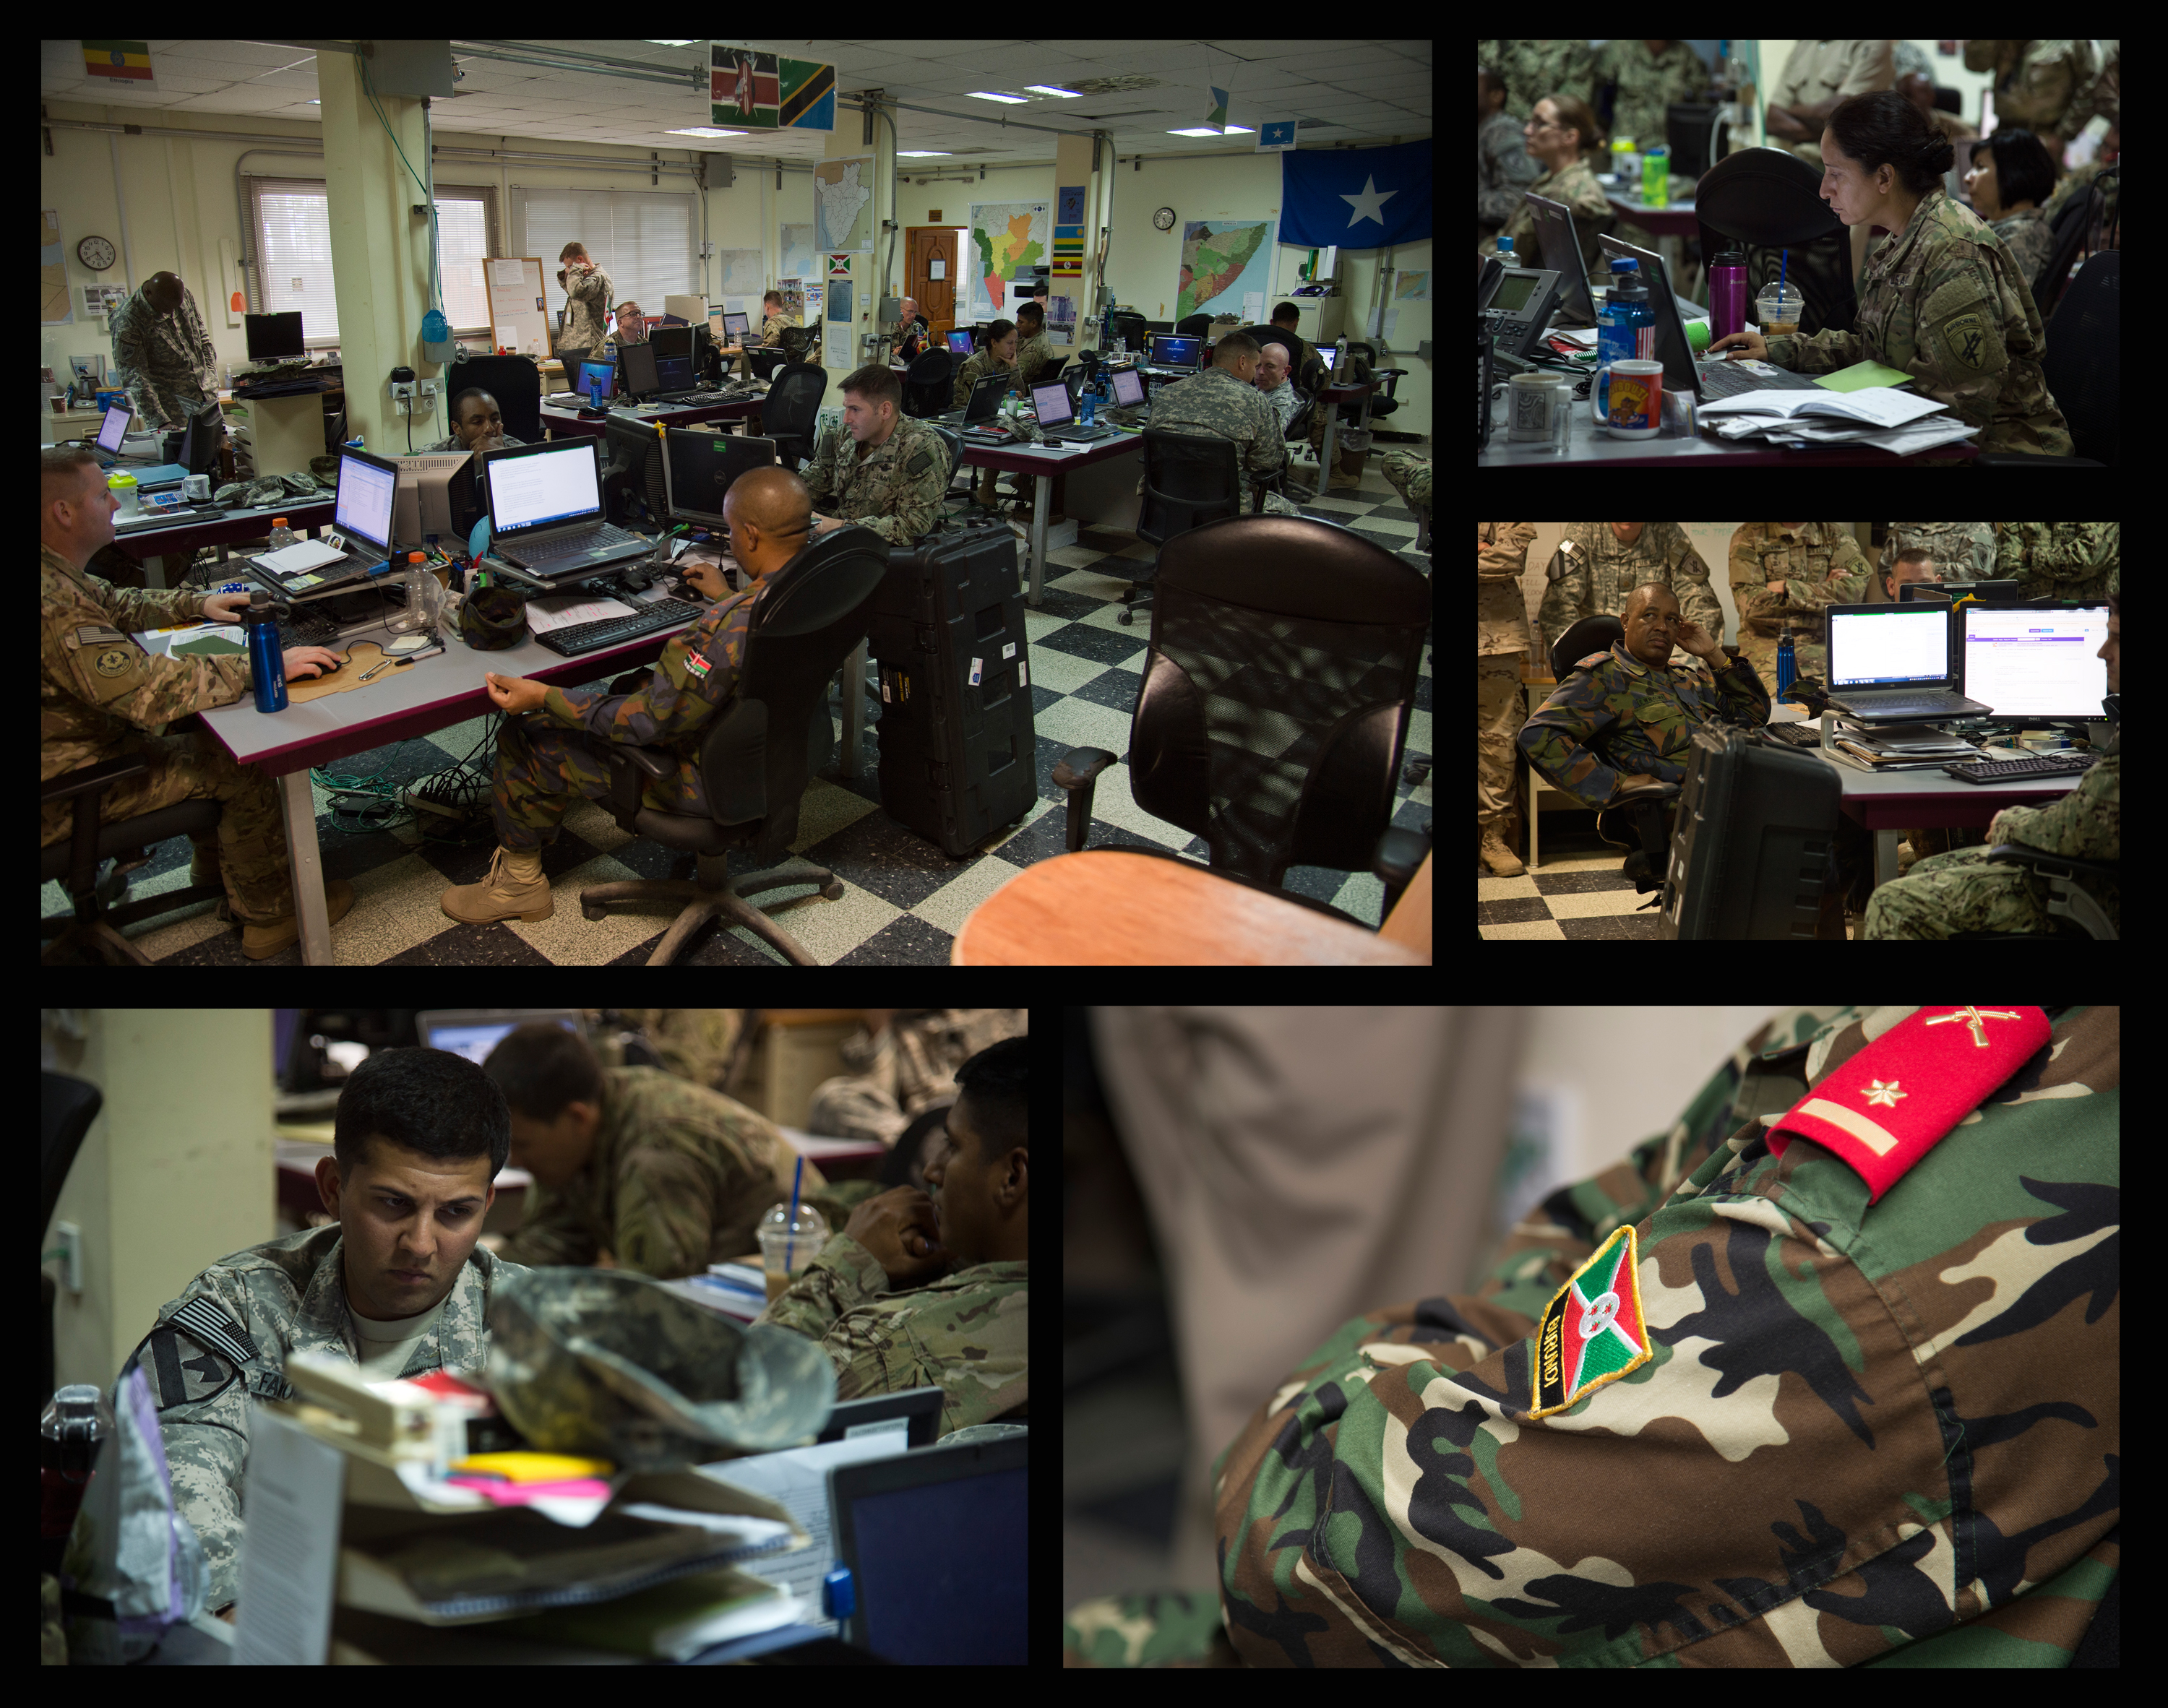 The Combined Joint Task Force-Horn of Africa Fusion Action Cell is comprised of service members from the U.S., Europe and East Africa working together to setup military-to-military projects and civilian support initiatives in partner countries throughout the Horn of Africa. The FAC personnel are separated into country desks composed of subject matter experts and foreign liaison officers who are responsible for streamlining the planning and coordination of projects in their respective country.  (U.S. Air Force graphic by Staff Sgt. Nathan Maysonet)